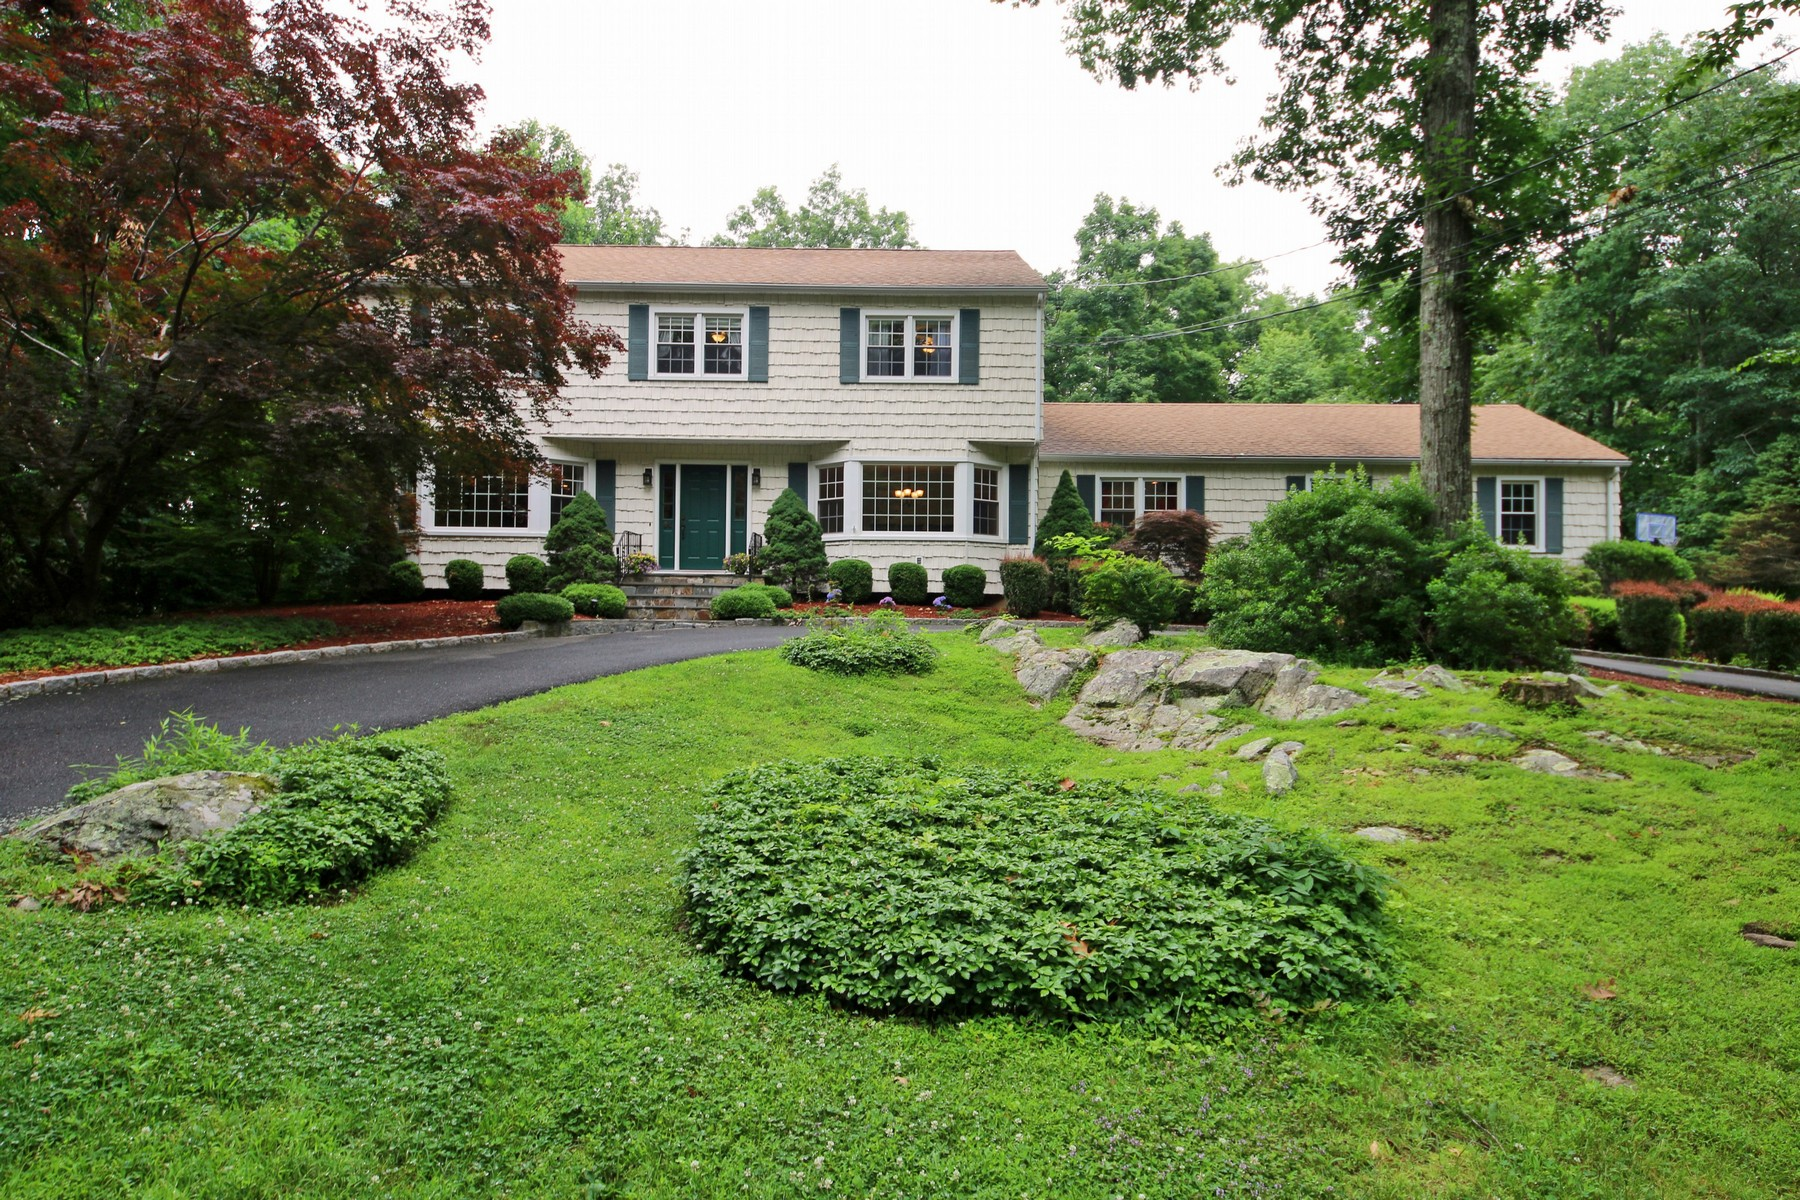 Single Family Home for Sale at Immaculate & Updated Center Hall Colonial 84 Revere Drive Ridgefield, Connecticut 06877 United States